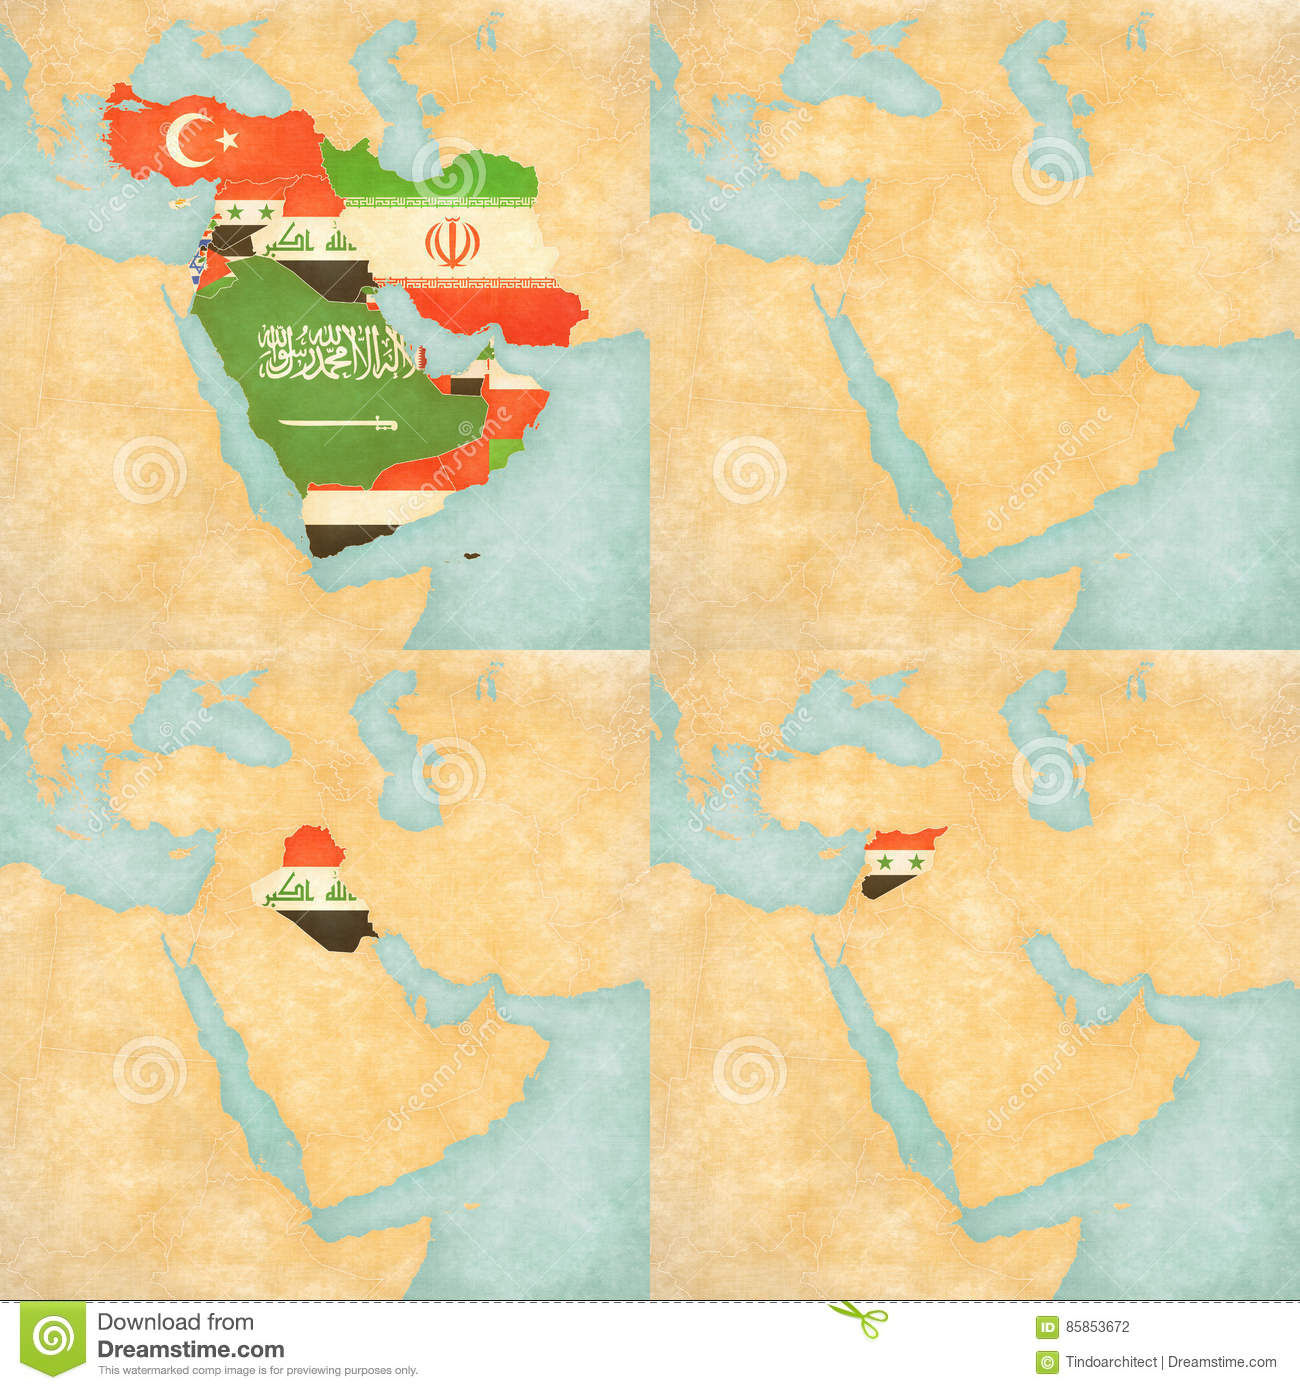 Map Of Middle East - Asia - All Countries, Blank Map, Iraq And Syria ...